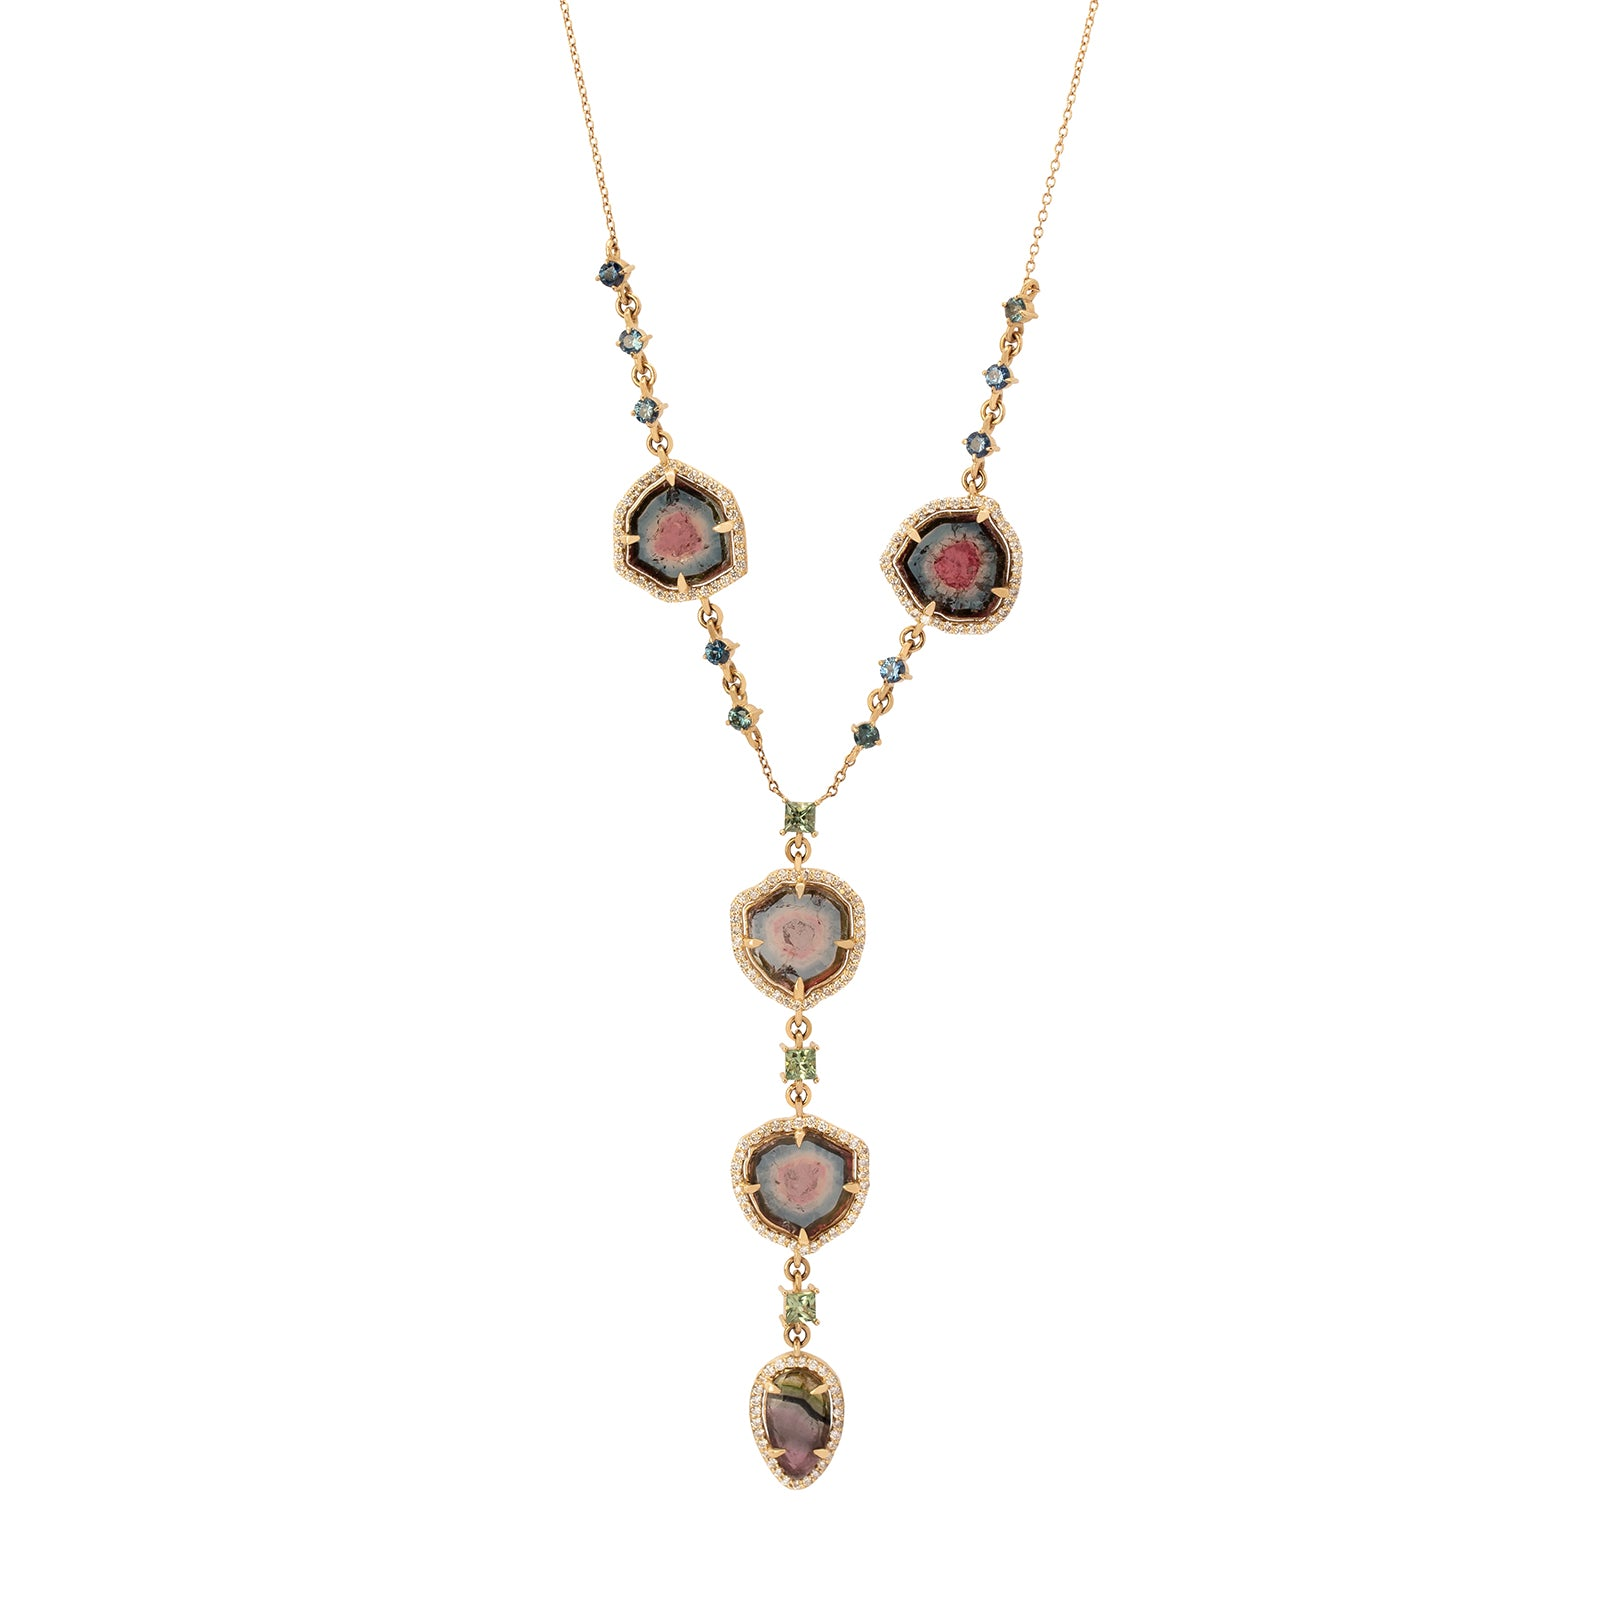 BaYou with Love Lariat Necklace - Watermelon Tourmaline  - Necklaces - Broken English Jewelry